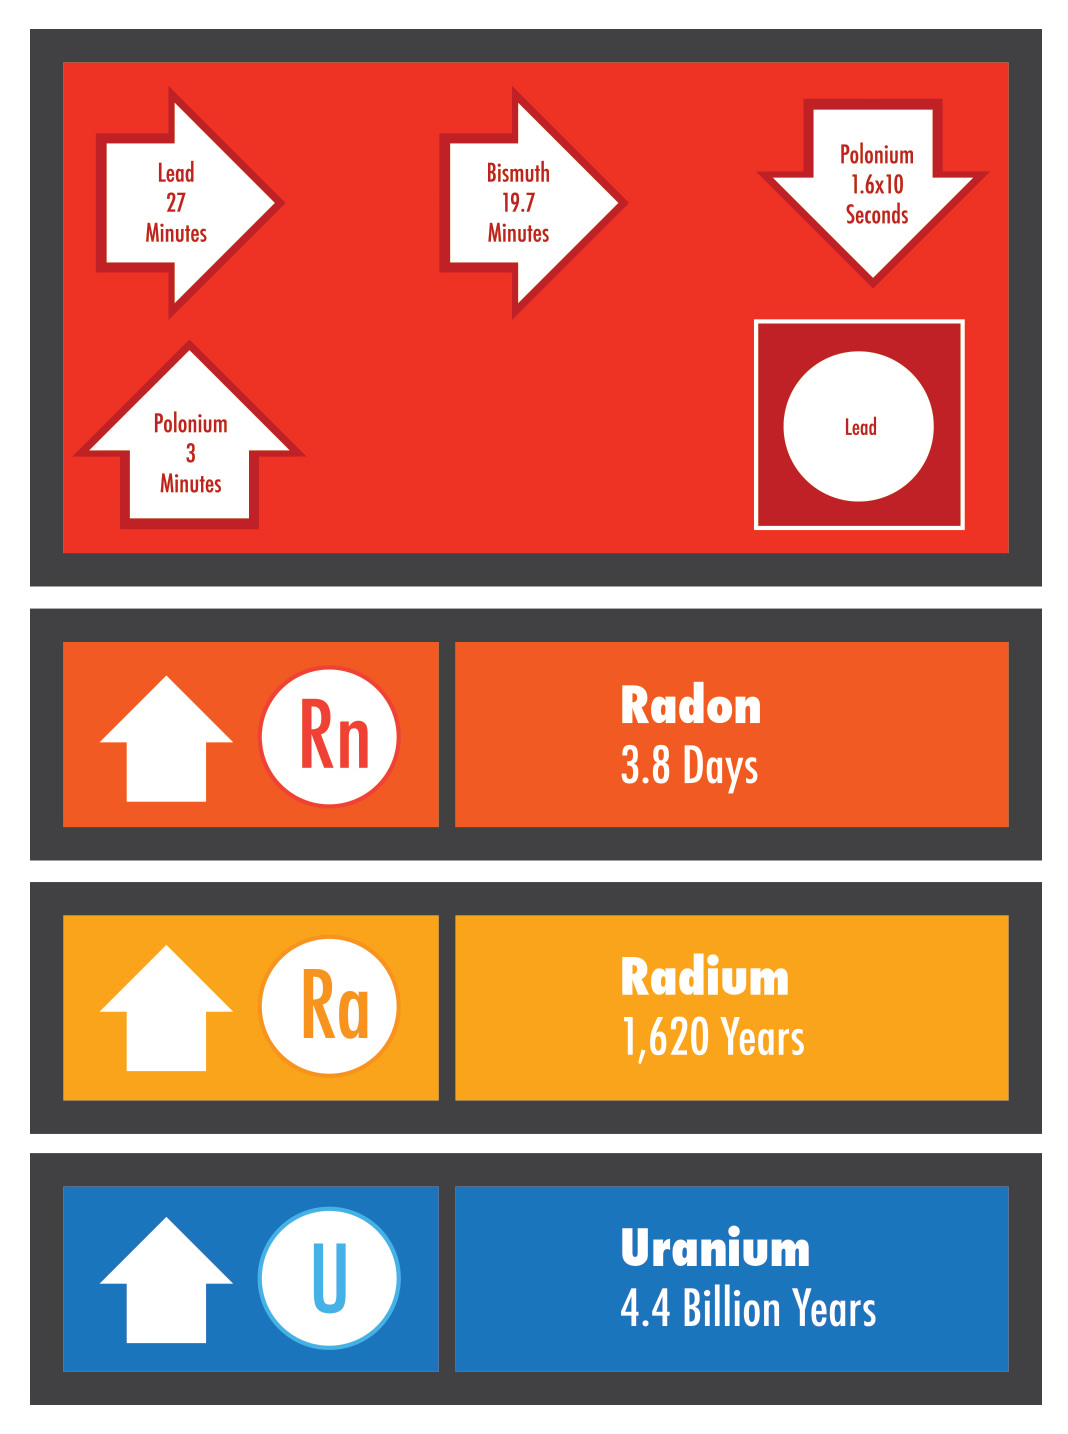 Radon decay products.